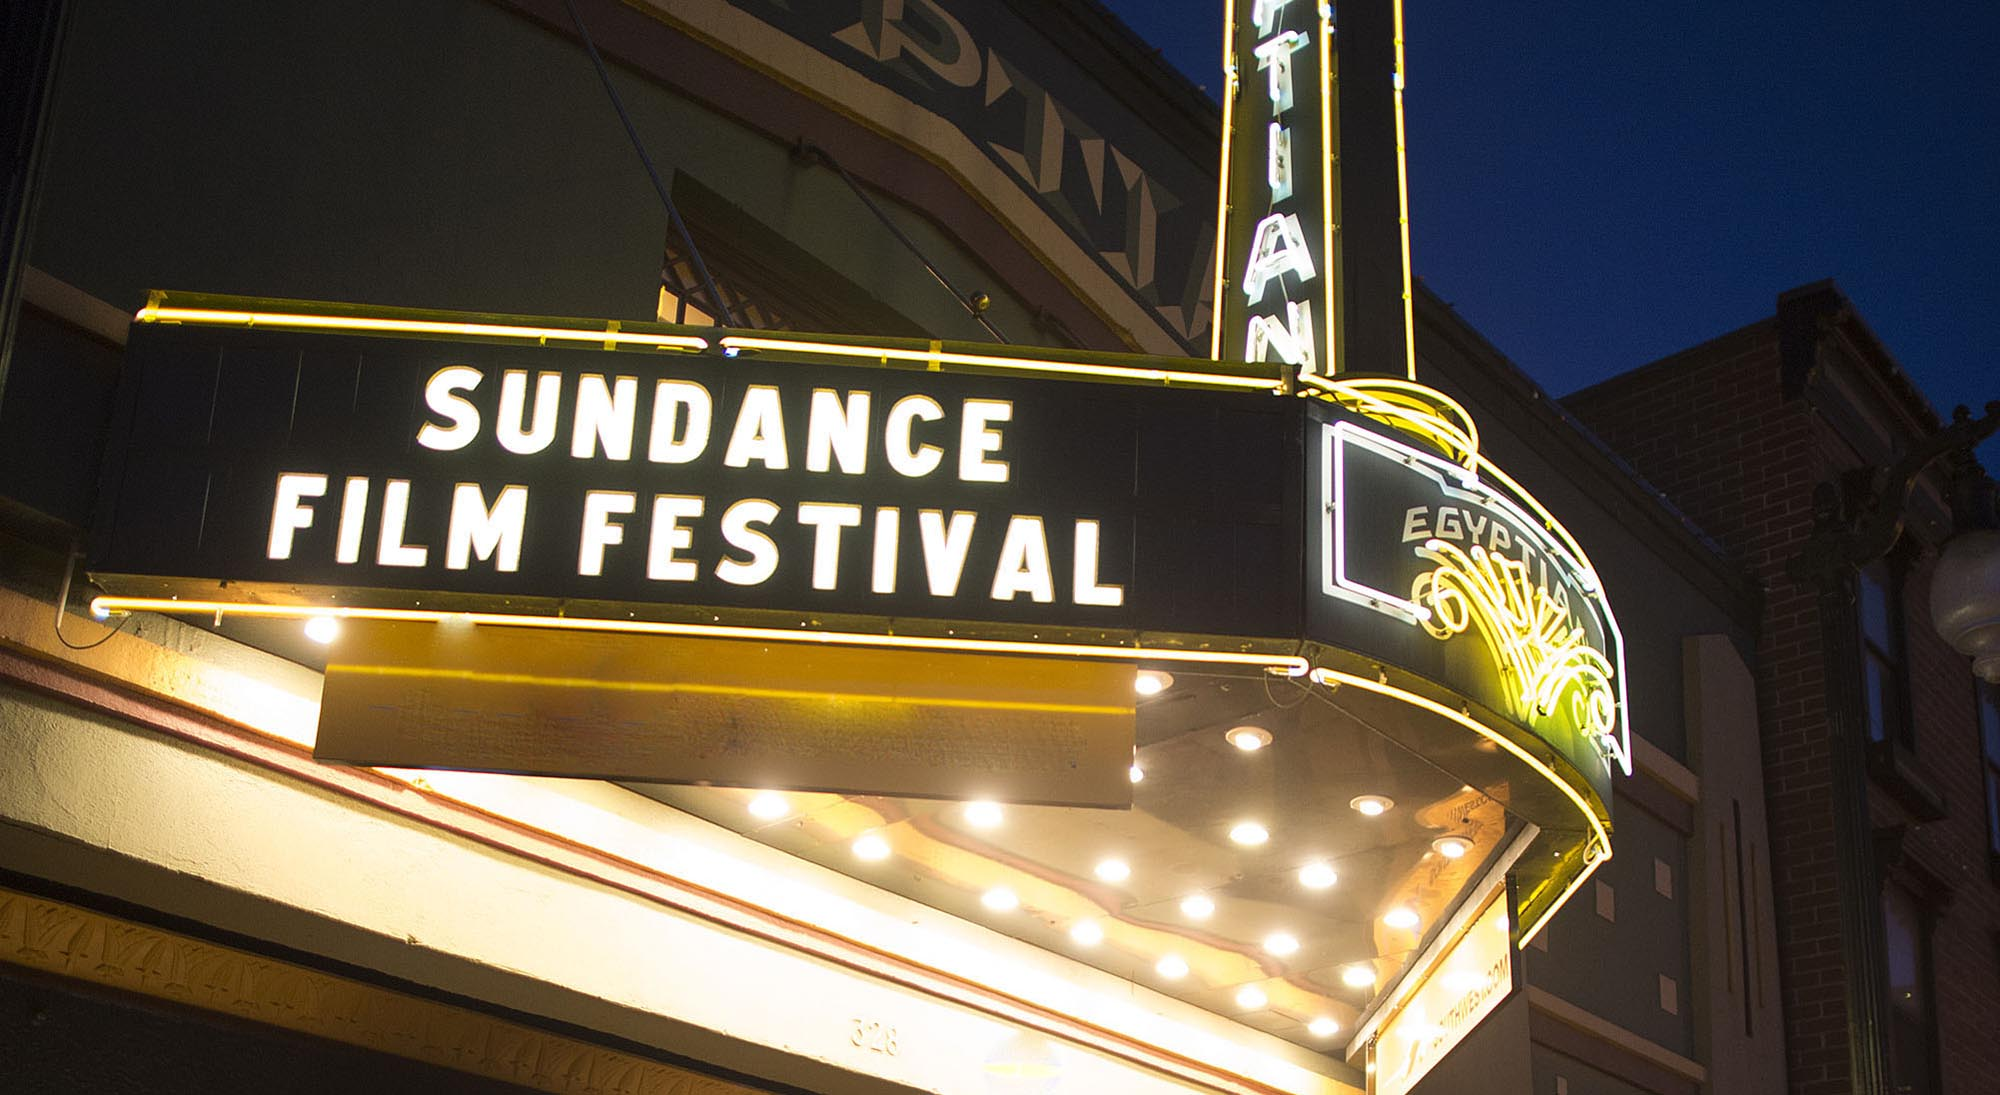 The 2018 Sundance Film Festival is underway, with Hollywood having set up camp in Park City, Salt Lake City to celebrate the bold work of independent storytellers in film and theater. To keep you in the loop, here's our roundup of Sundance so far, comprising of reviews, news, and everything in between.